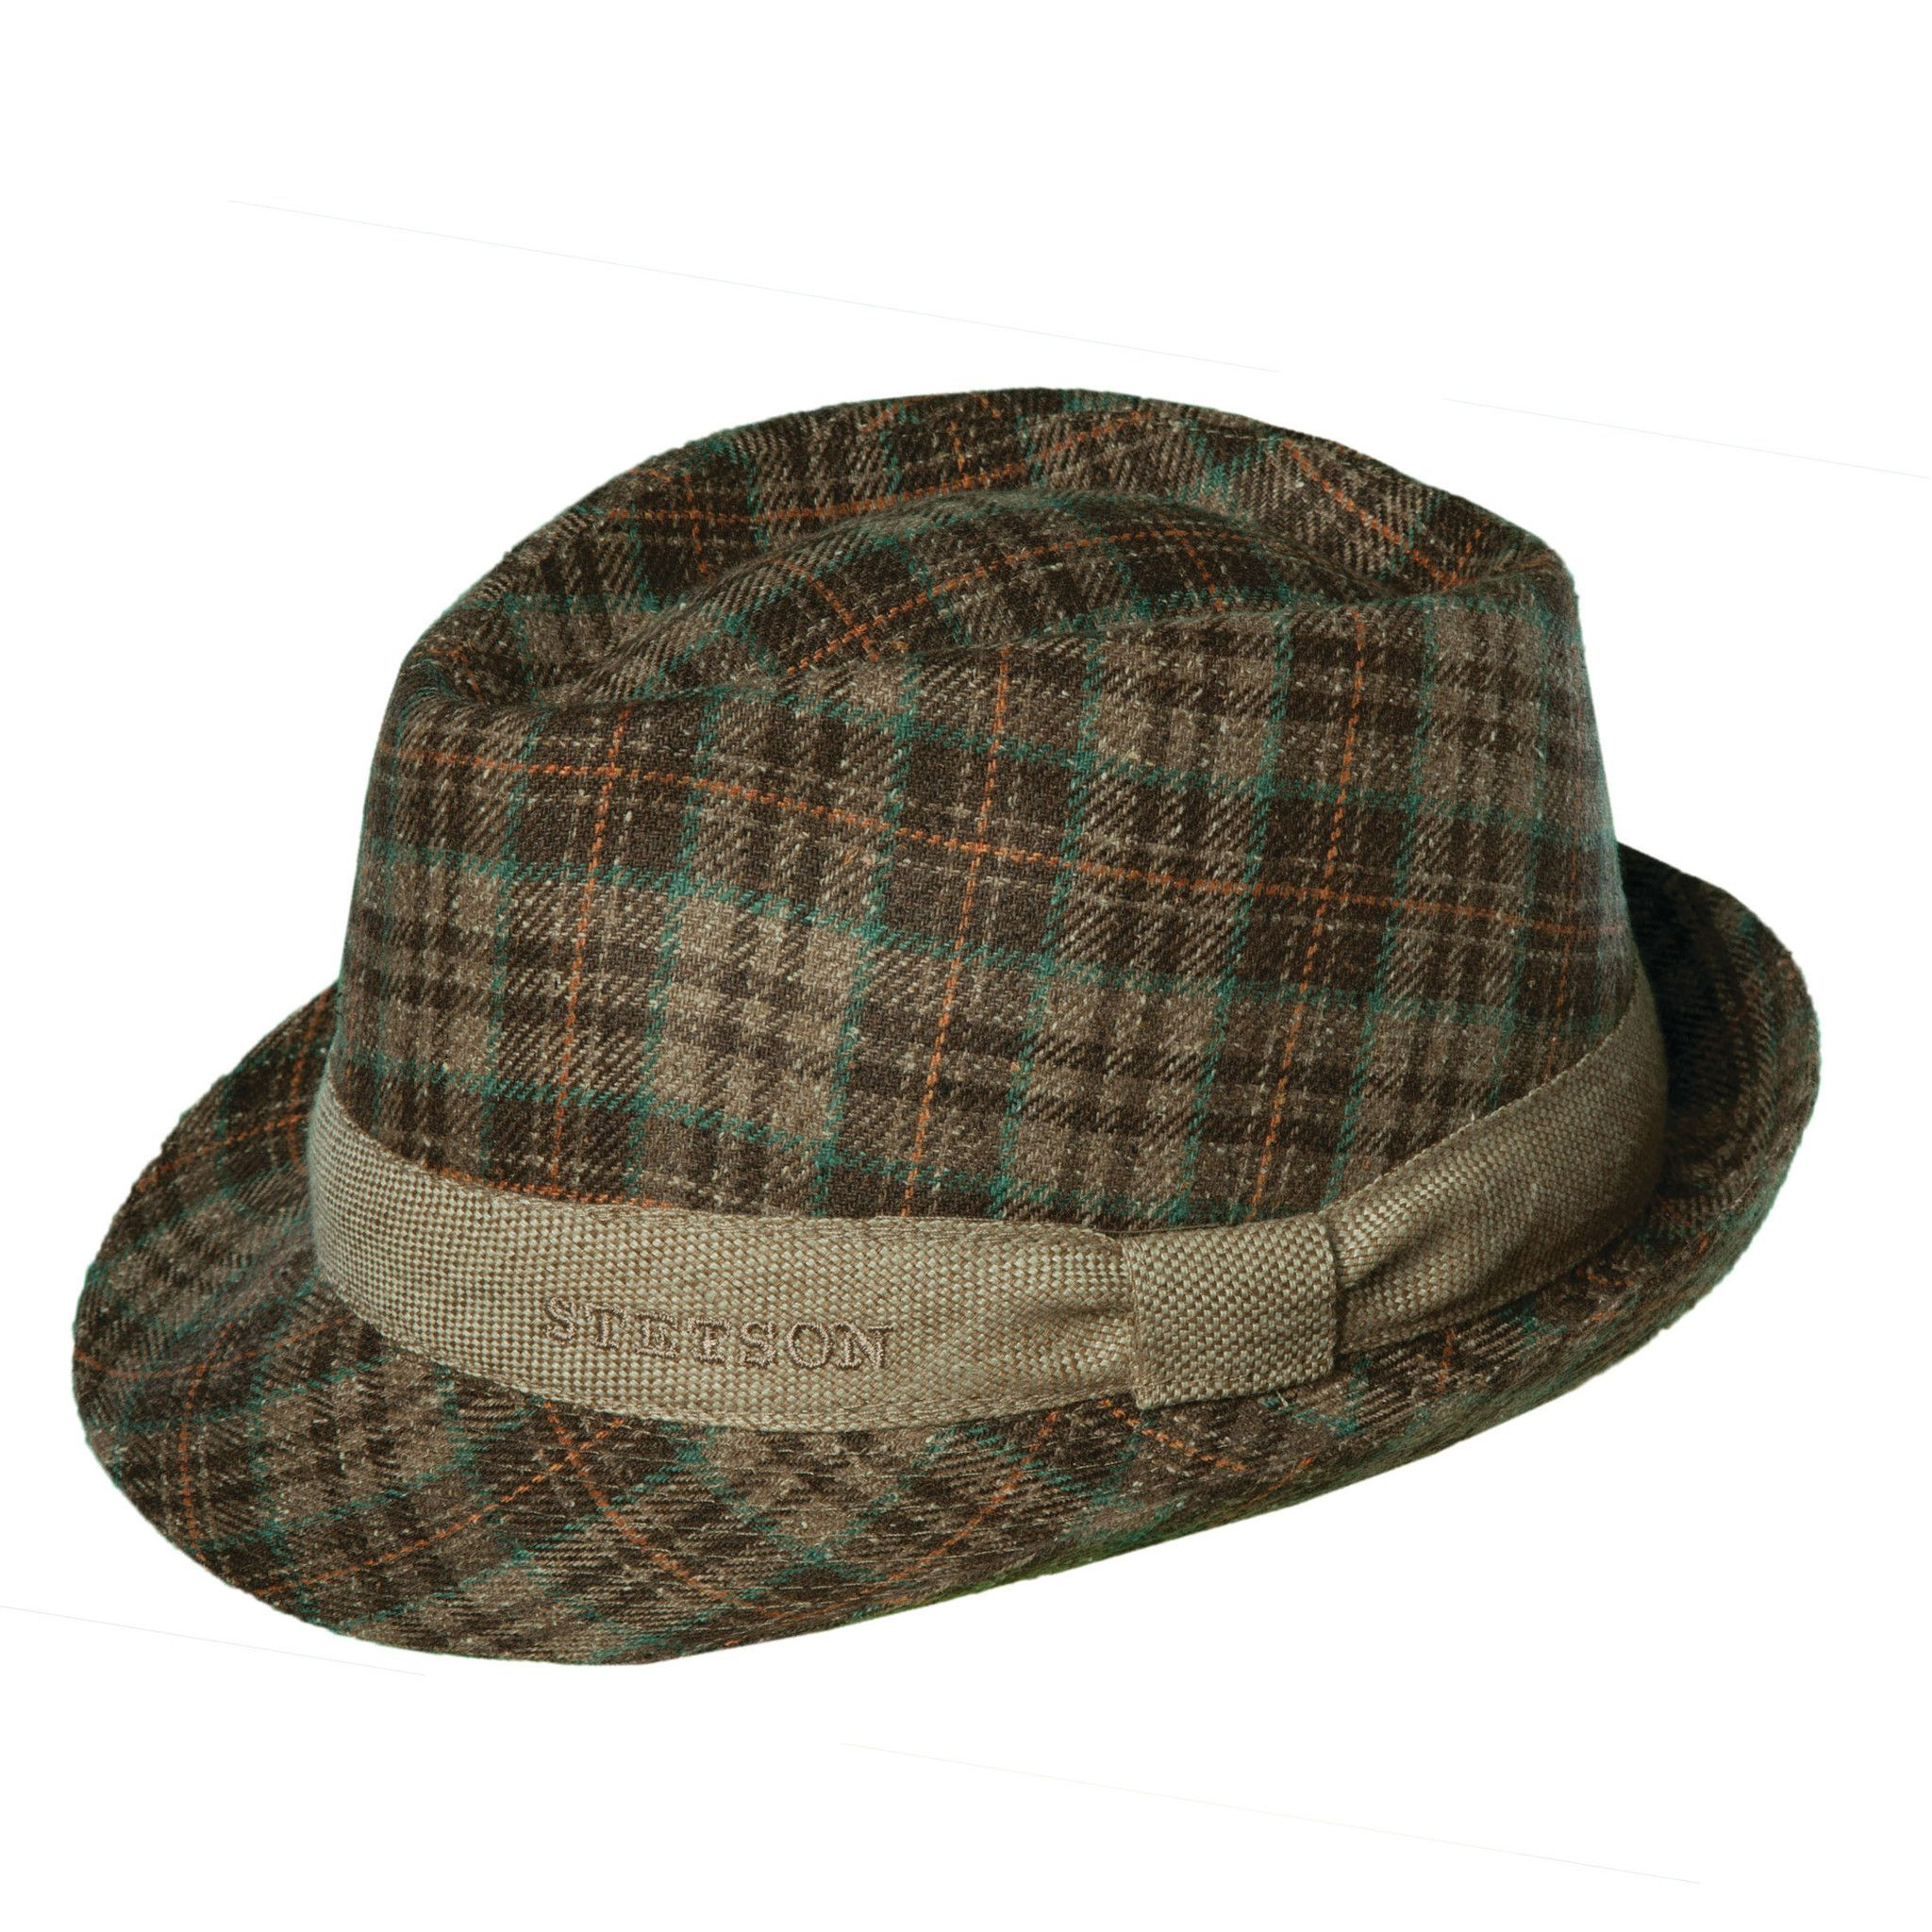 European inspired low crown fedora made in Italy. Lightweight taylor silk  hat. Linen band with